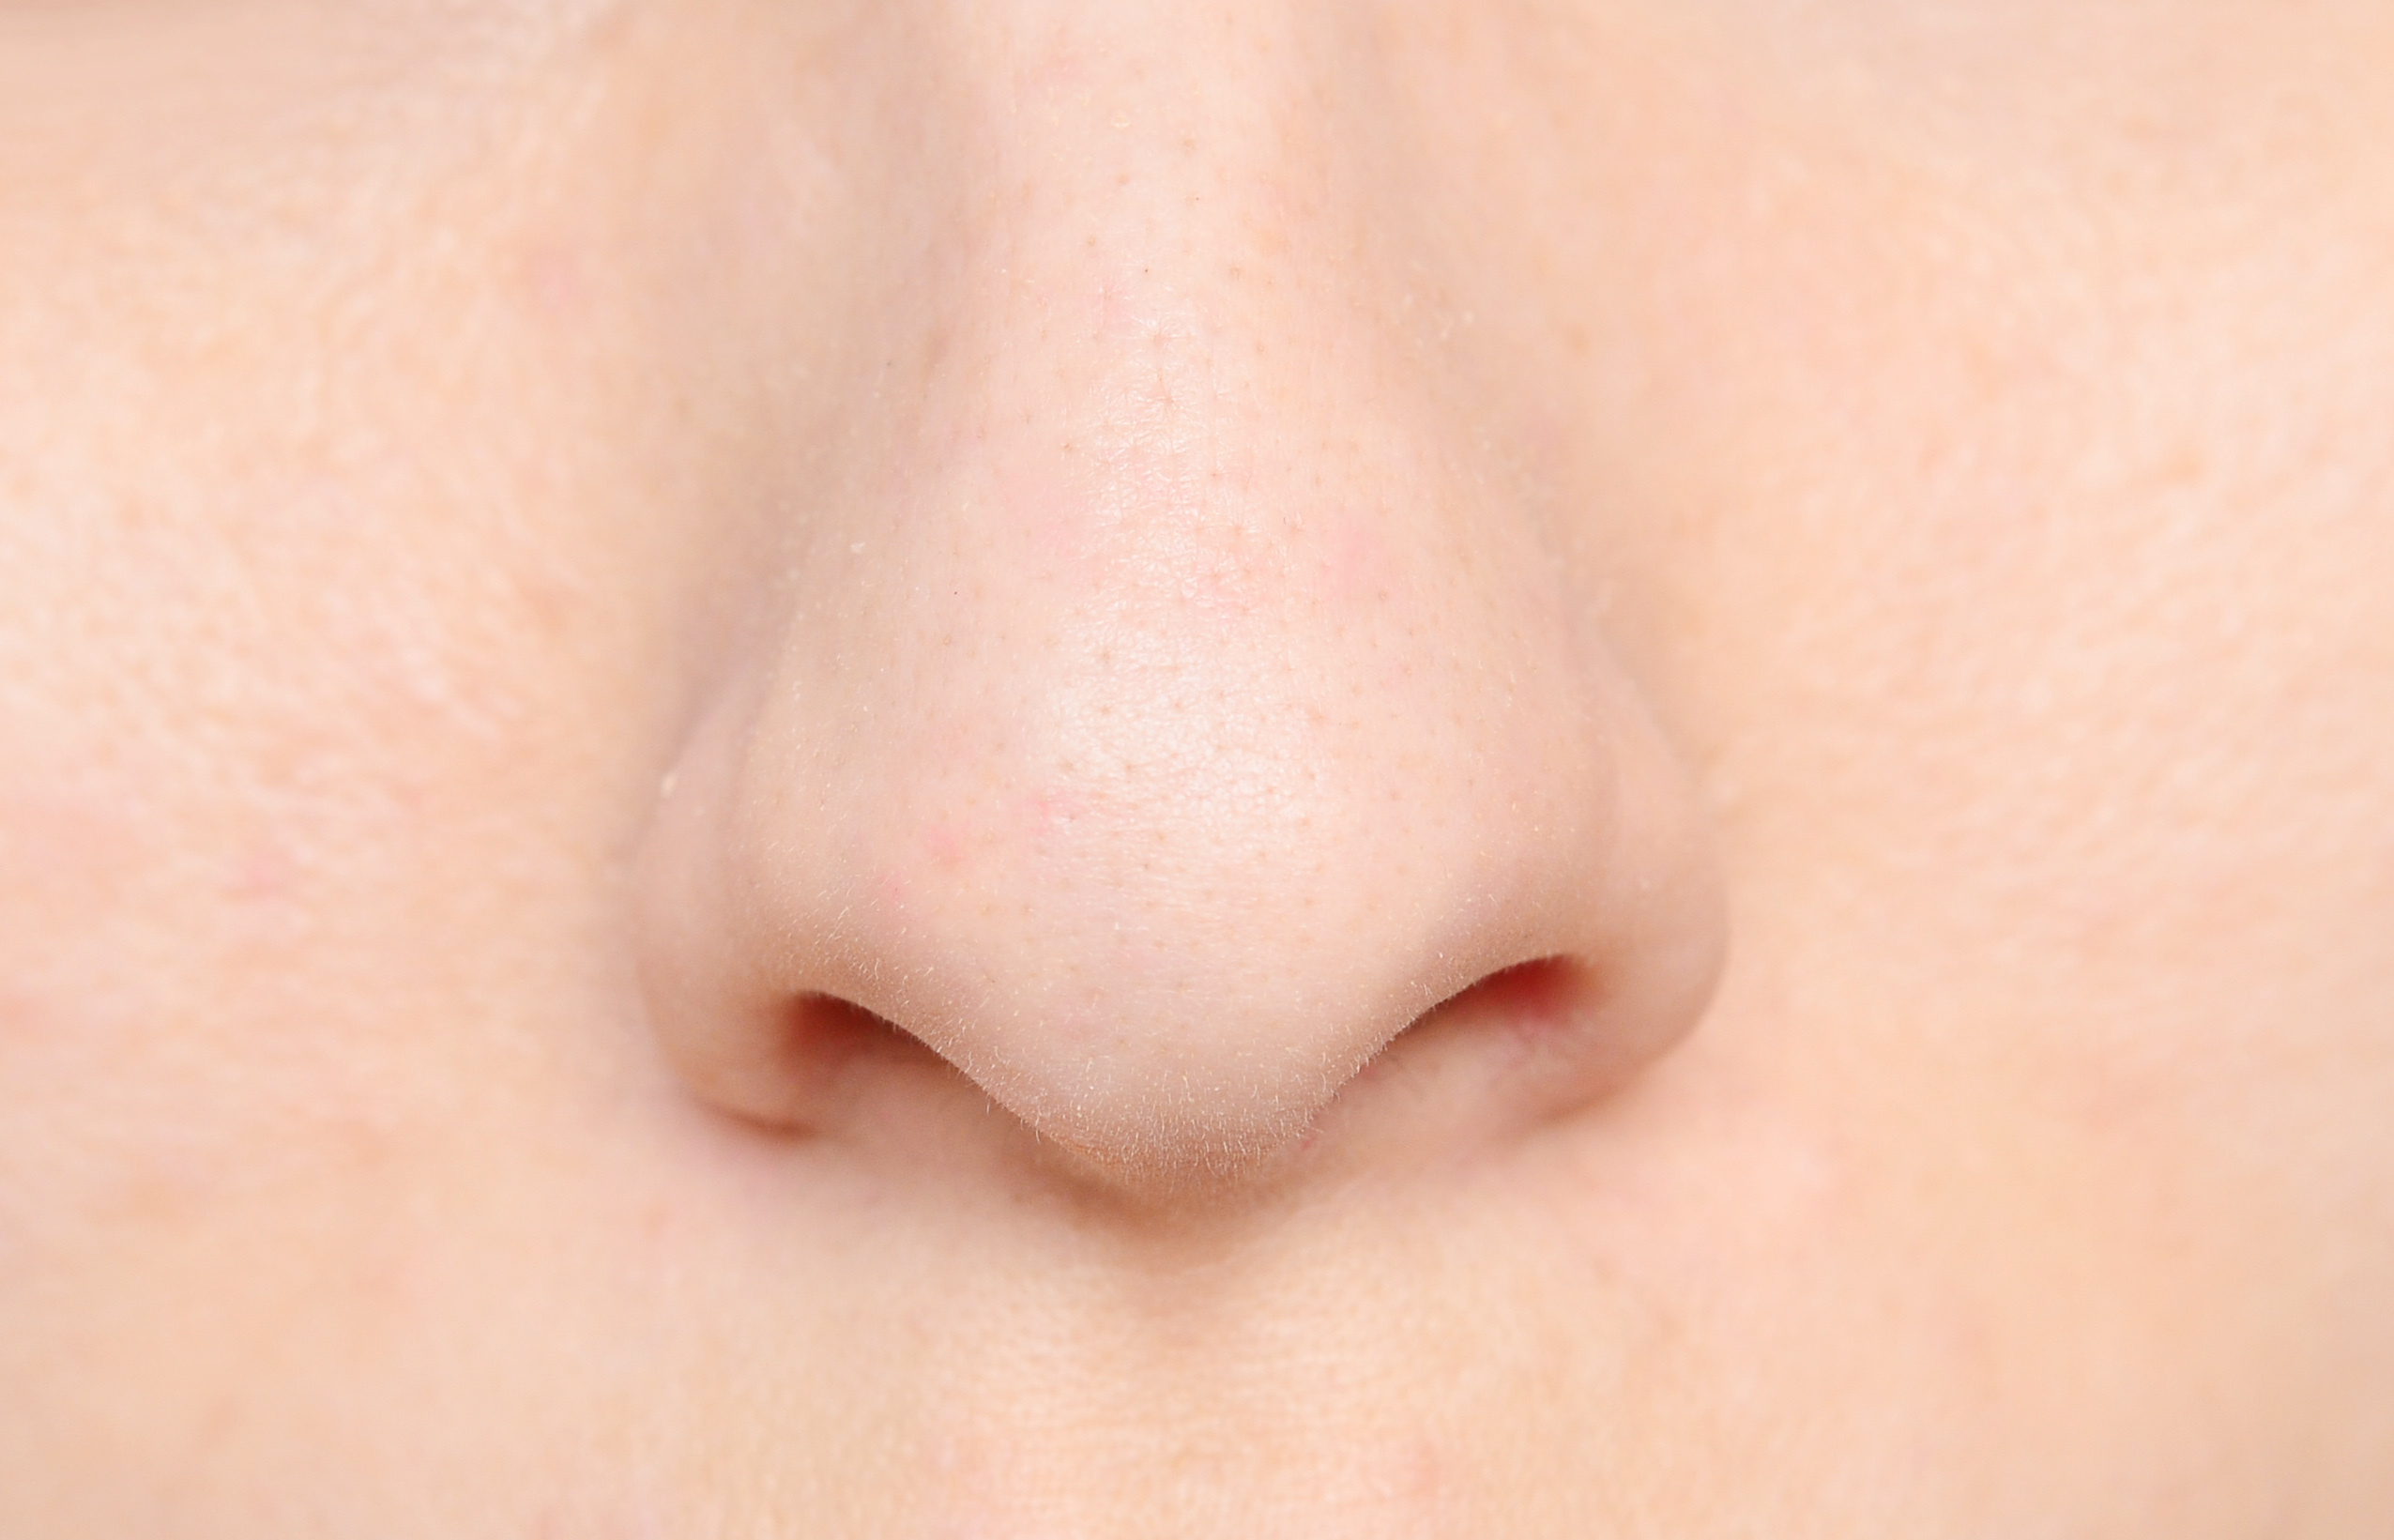 Numb Nose Symptoms, Causes & Common Questions | Buoy